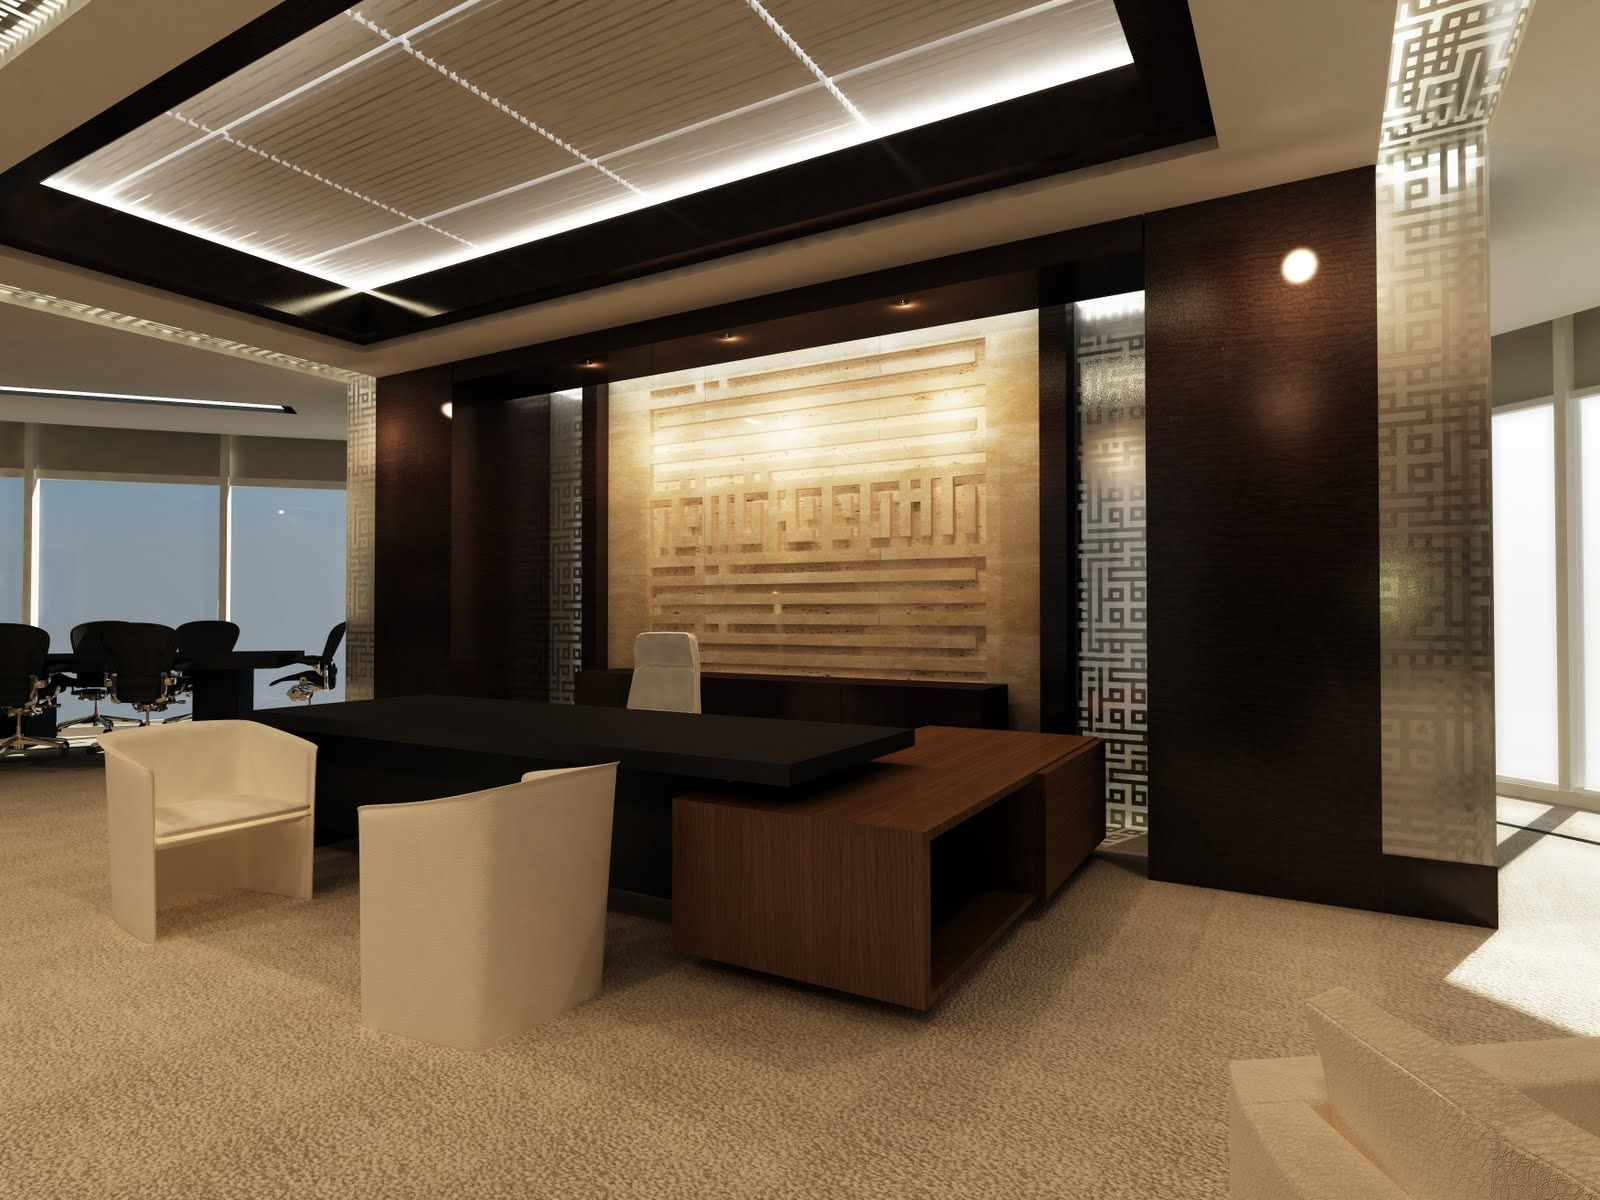 Office Interior Design Ideas trendy design ideas office interior eight elements to consider while planning office interior Office Interior Design Intended For Office Interior Design Ideas Mrliu